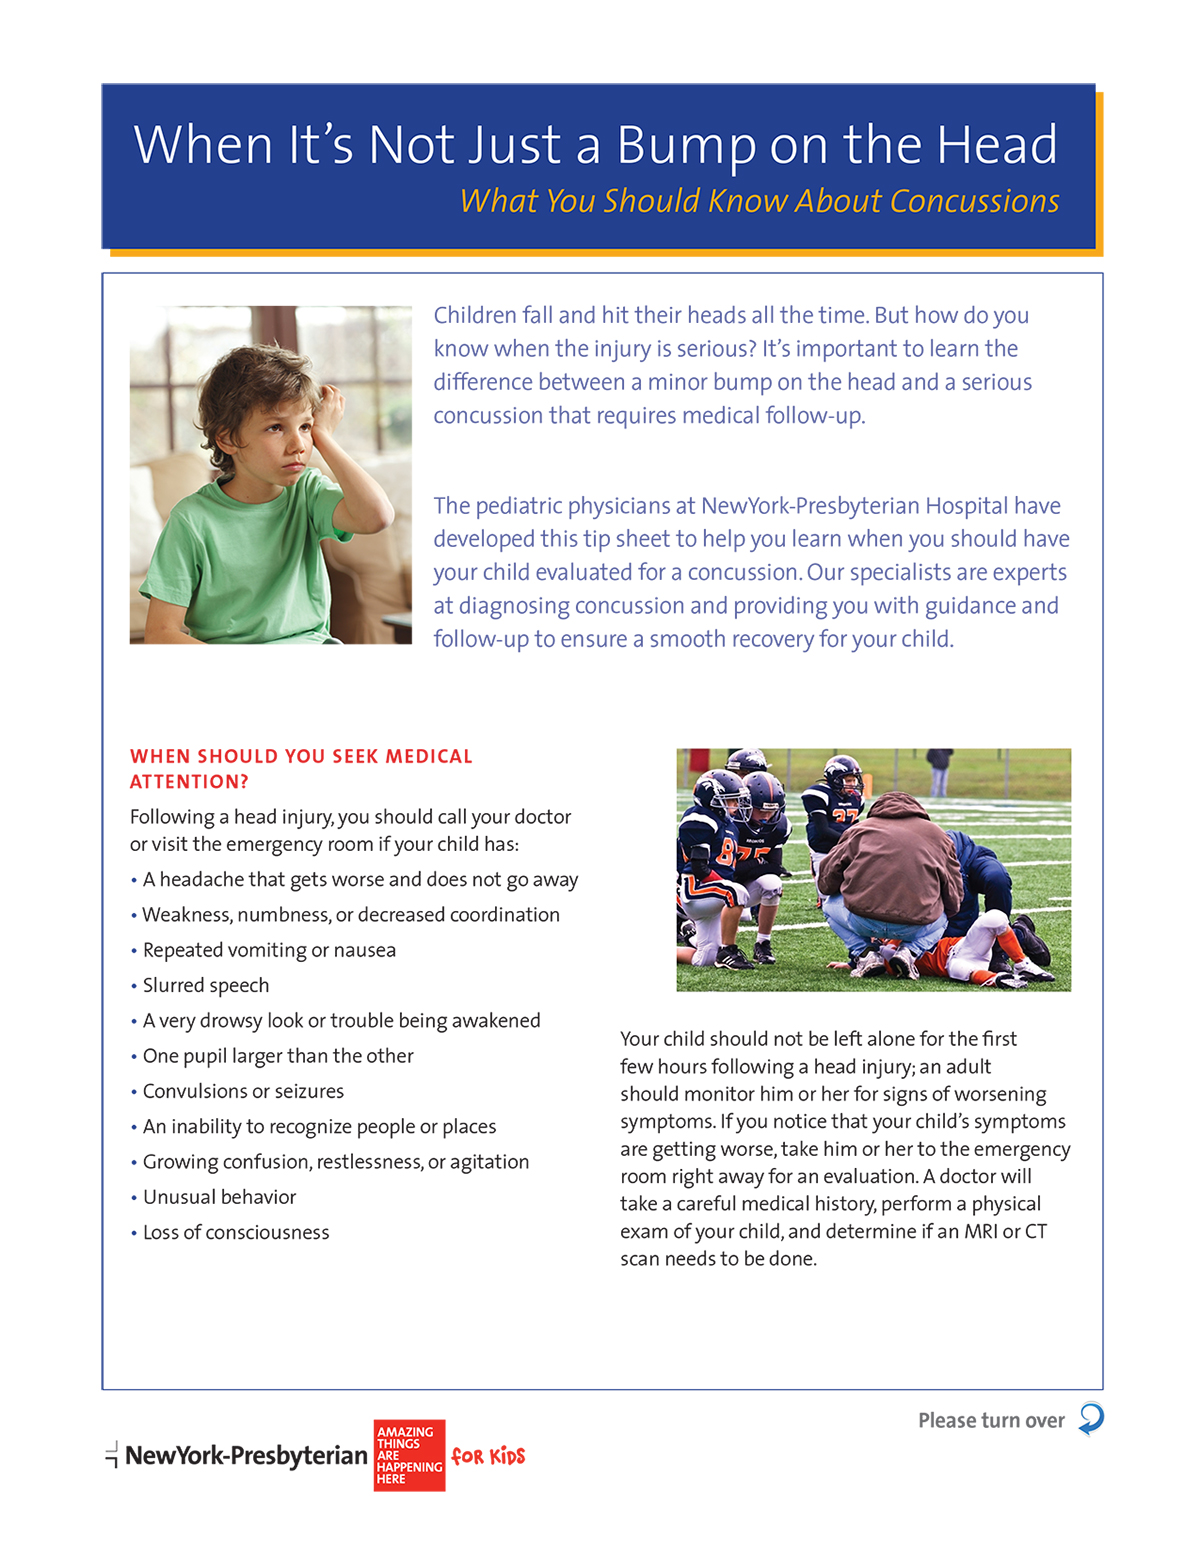 When It's not Just a Bump on the Head: What You Should Know about Concussions page 1